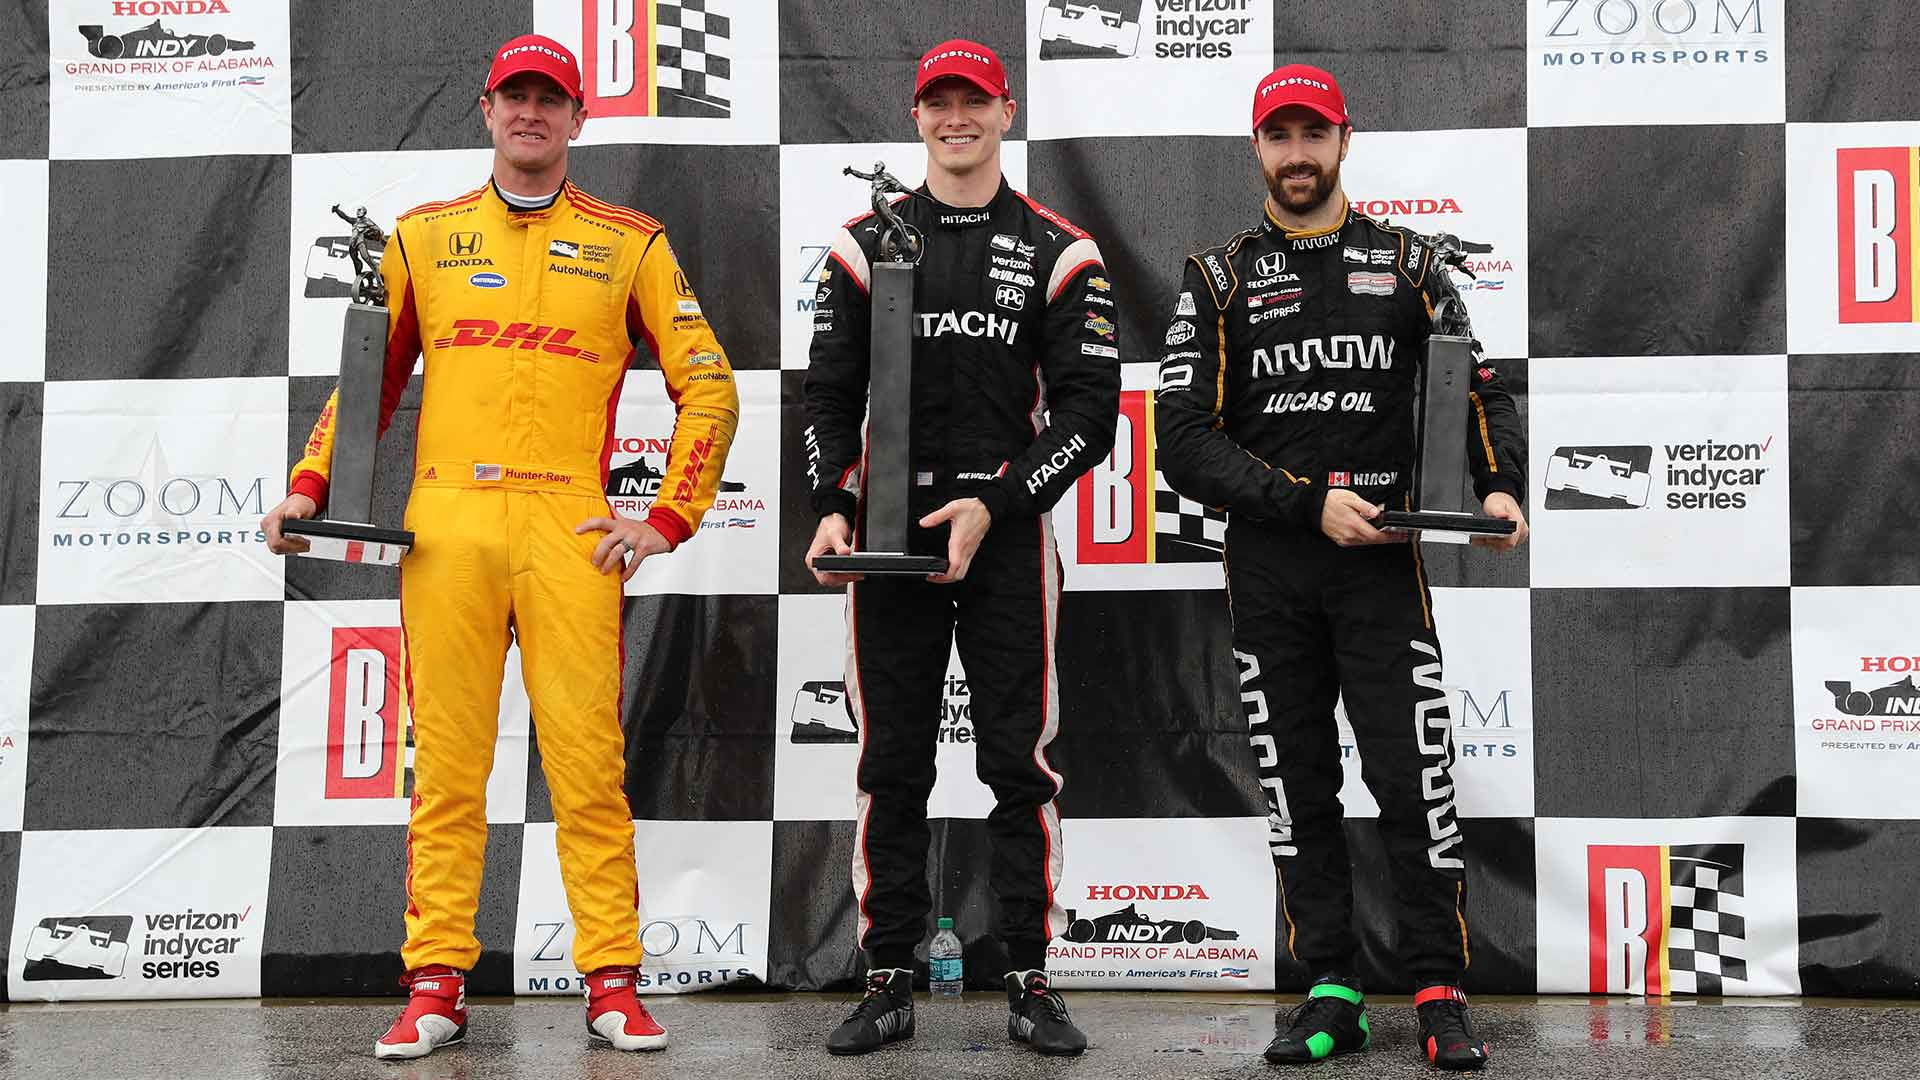 Josef Newgarden, Ryan Hunter-Reay and James Hinchcliffe line up for a podium shoot